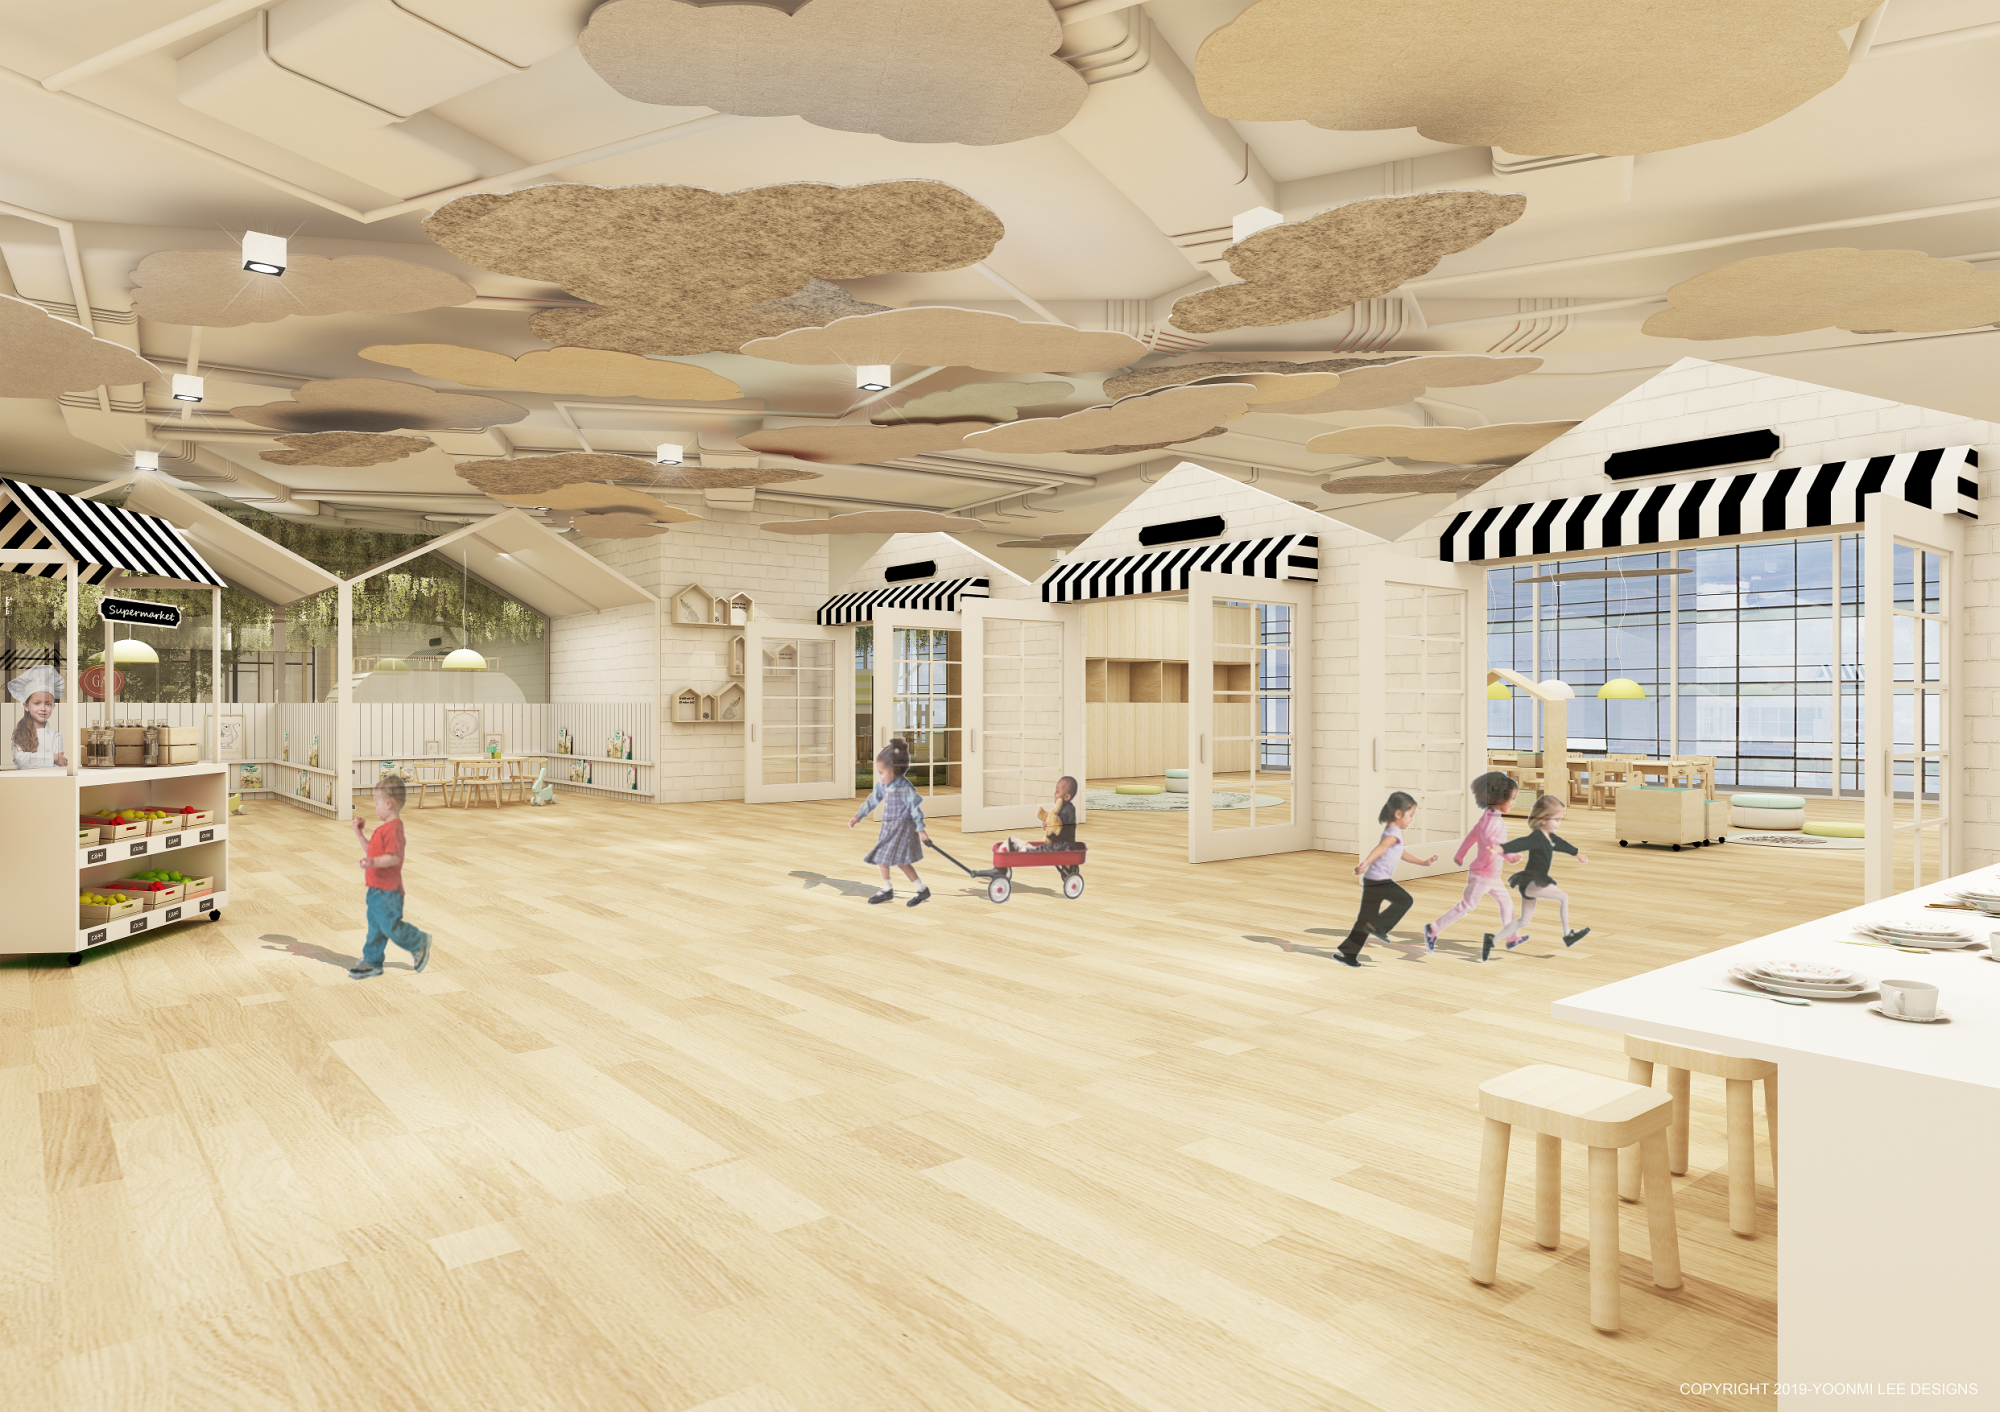 Trehaus At Funan Is A Silicon Valley-Inspired Preschool, Co-Working Space And Family Club